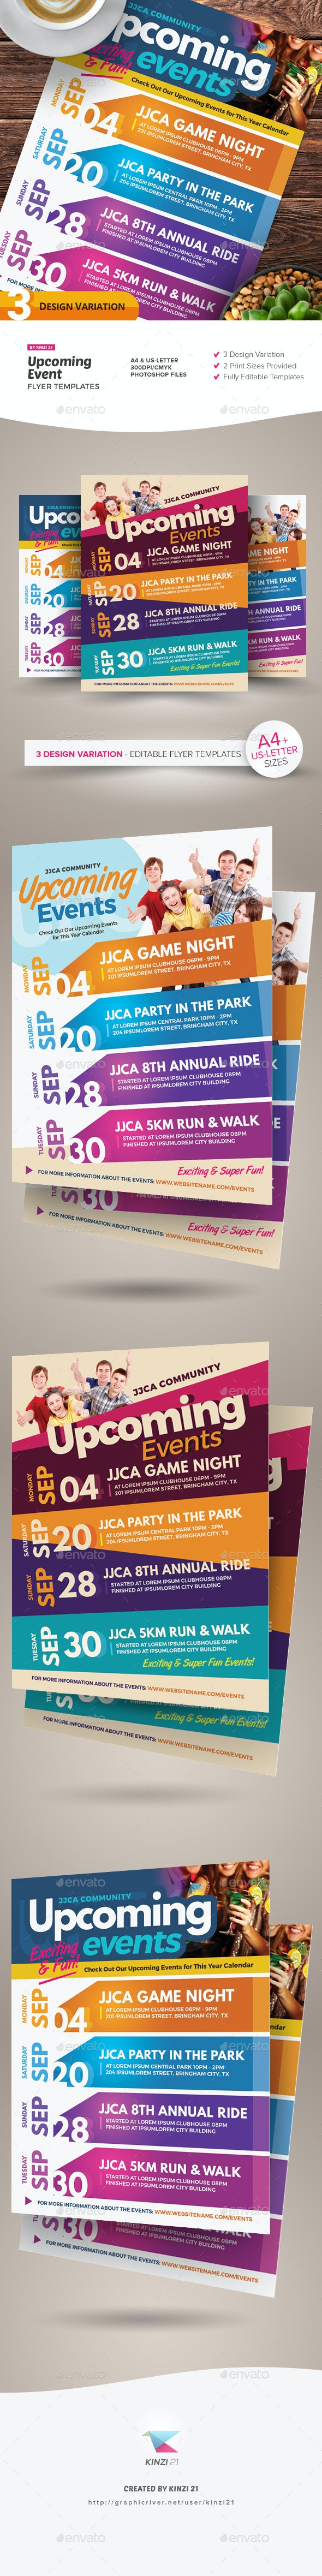 Upcoming Events Flyer Templates